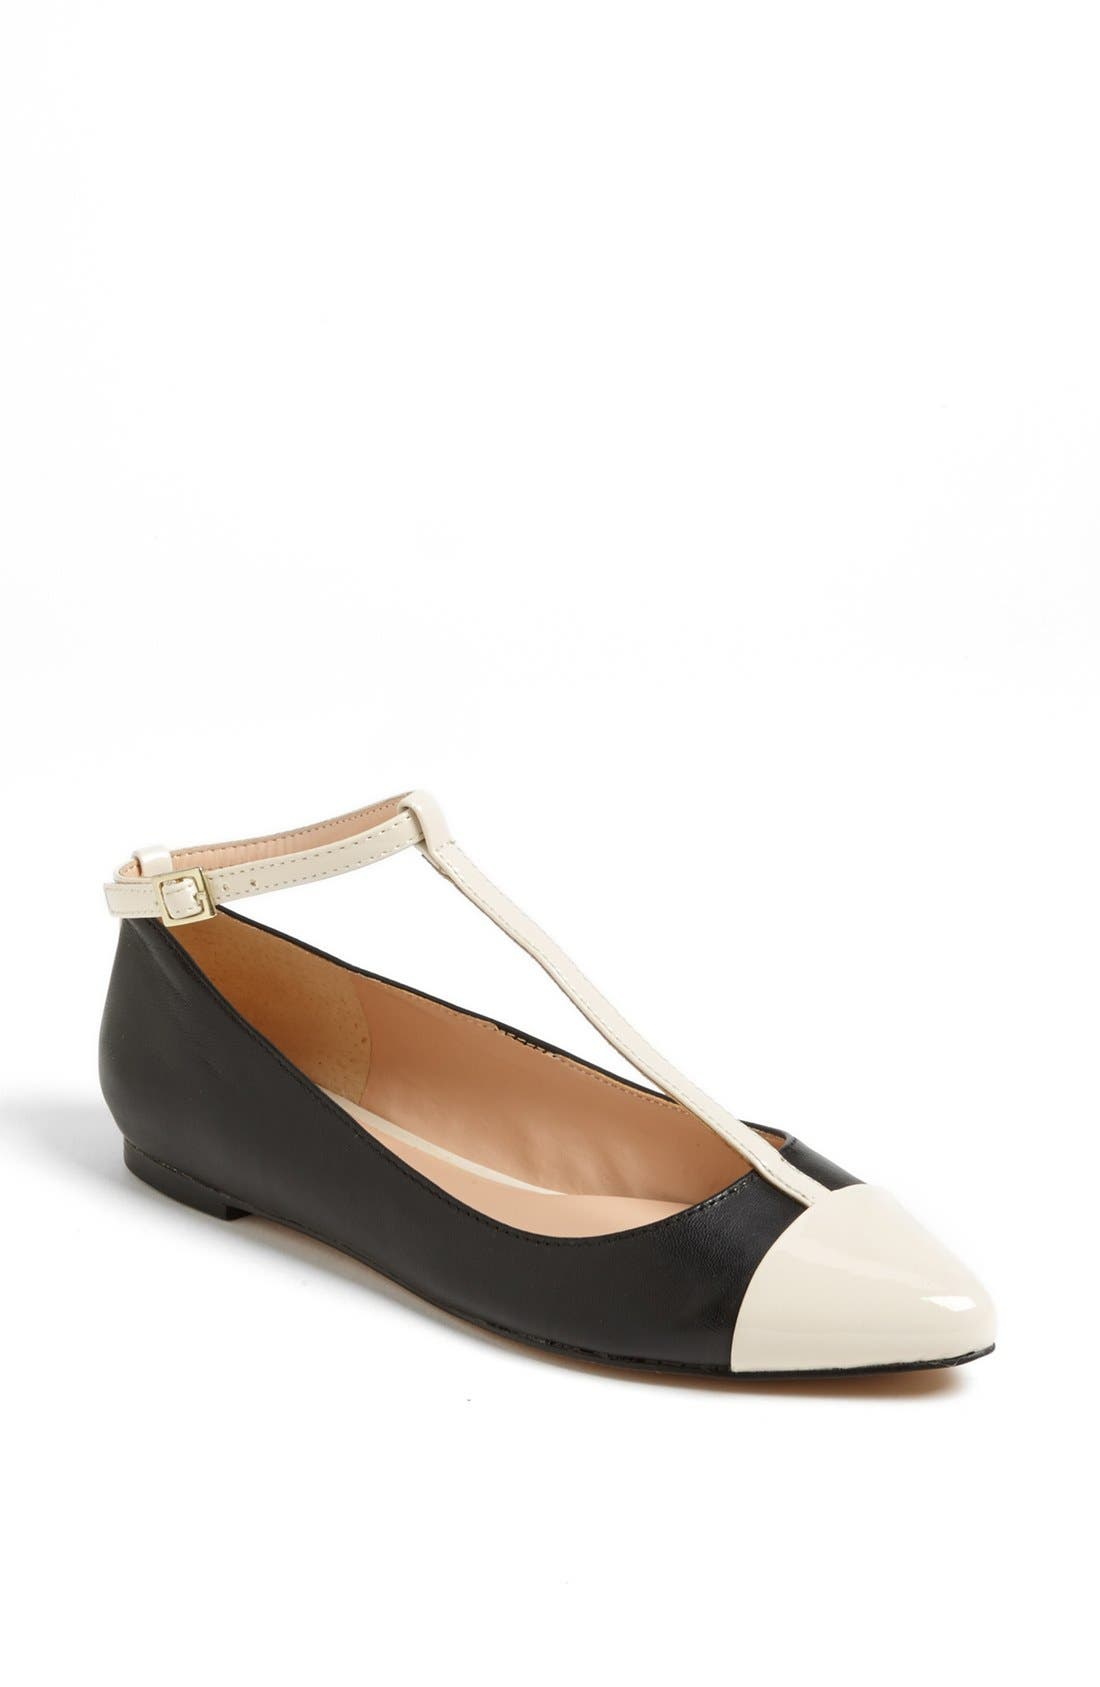 Julianne Hough for Sole Society 'Addy' Flat,                             Main thumbnail 1, color,                             001